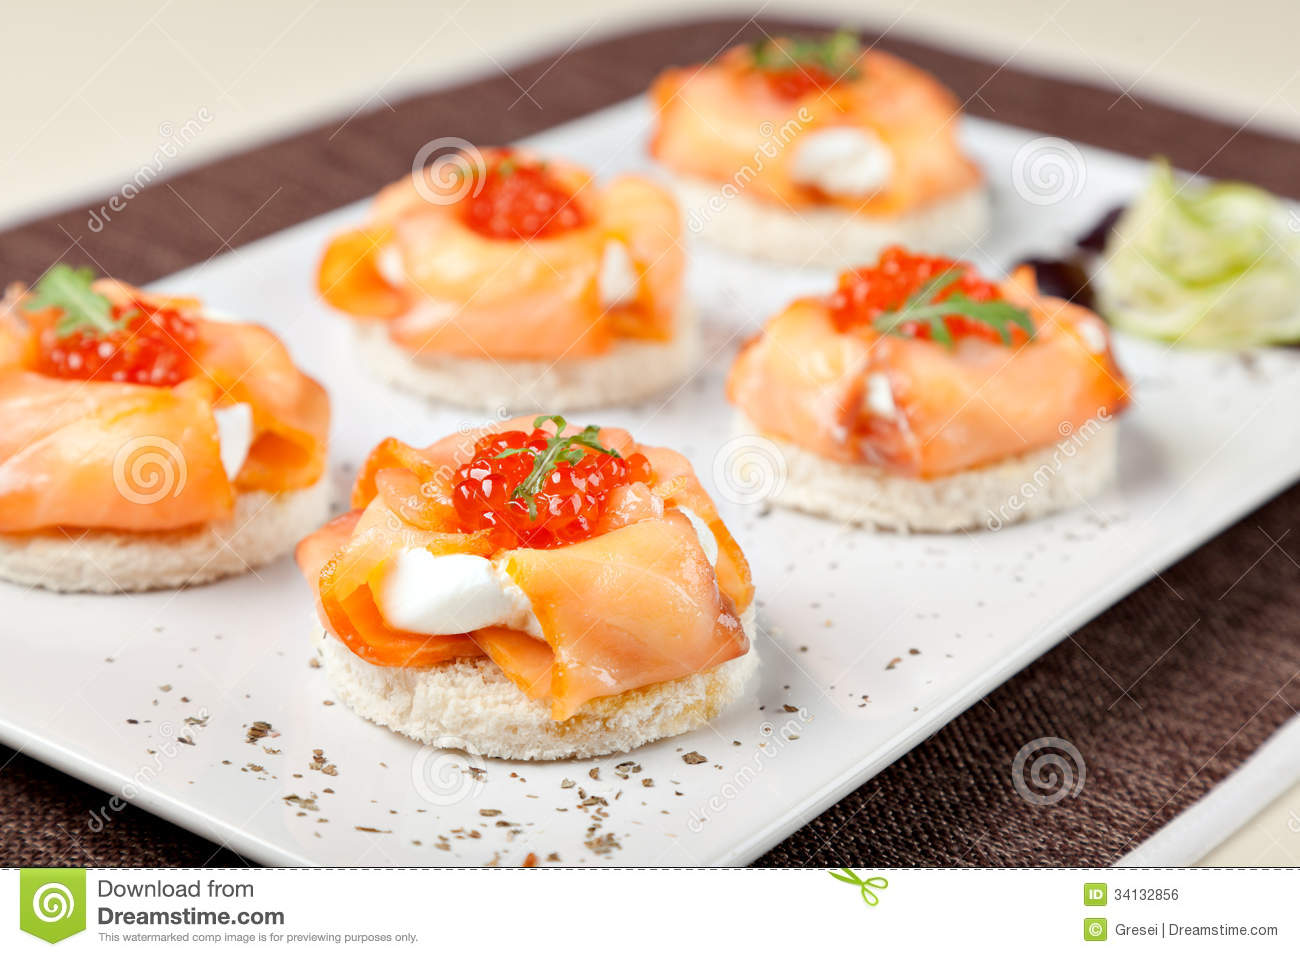 Canapes with smoked salmon royalty free stock image for Smoked salmon cream cheese canape